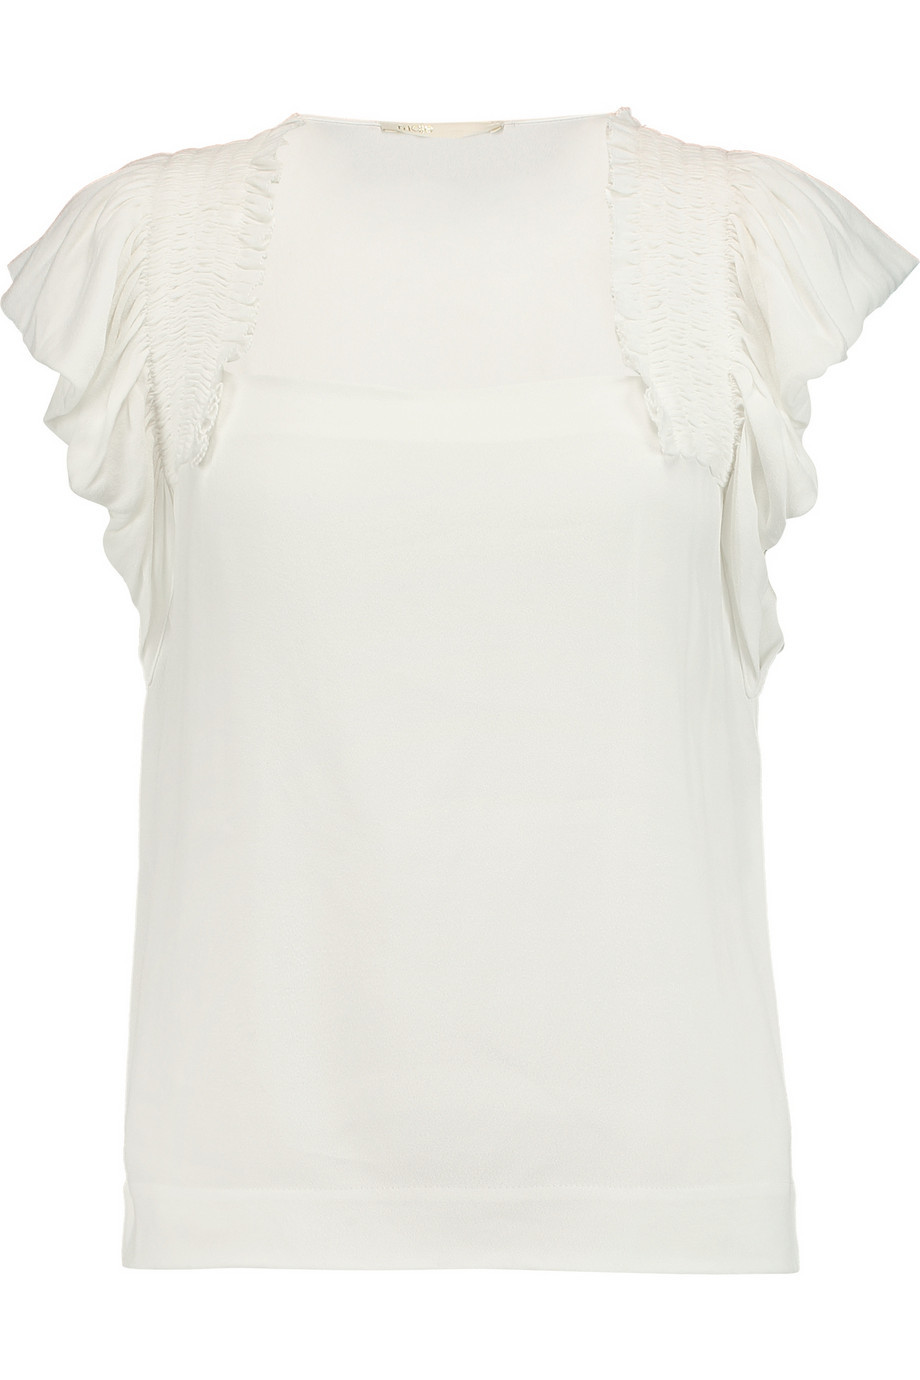 Louve Pleated Chiffon Top Ecru - sleeve style: angel/waterfall; pattern: plain; neckline: high neck; predominant colour: ivory/cream; occasions: casual; length: standard; style: top; fibres: viscose/rayon - 100%; fit: body skimming; sleeve length: short sleeve; texture group: sheer fabrics/chiffon/organza etc.; pattern type: fabric; season: s/s 2016; wardrobe: basic